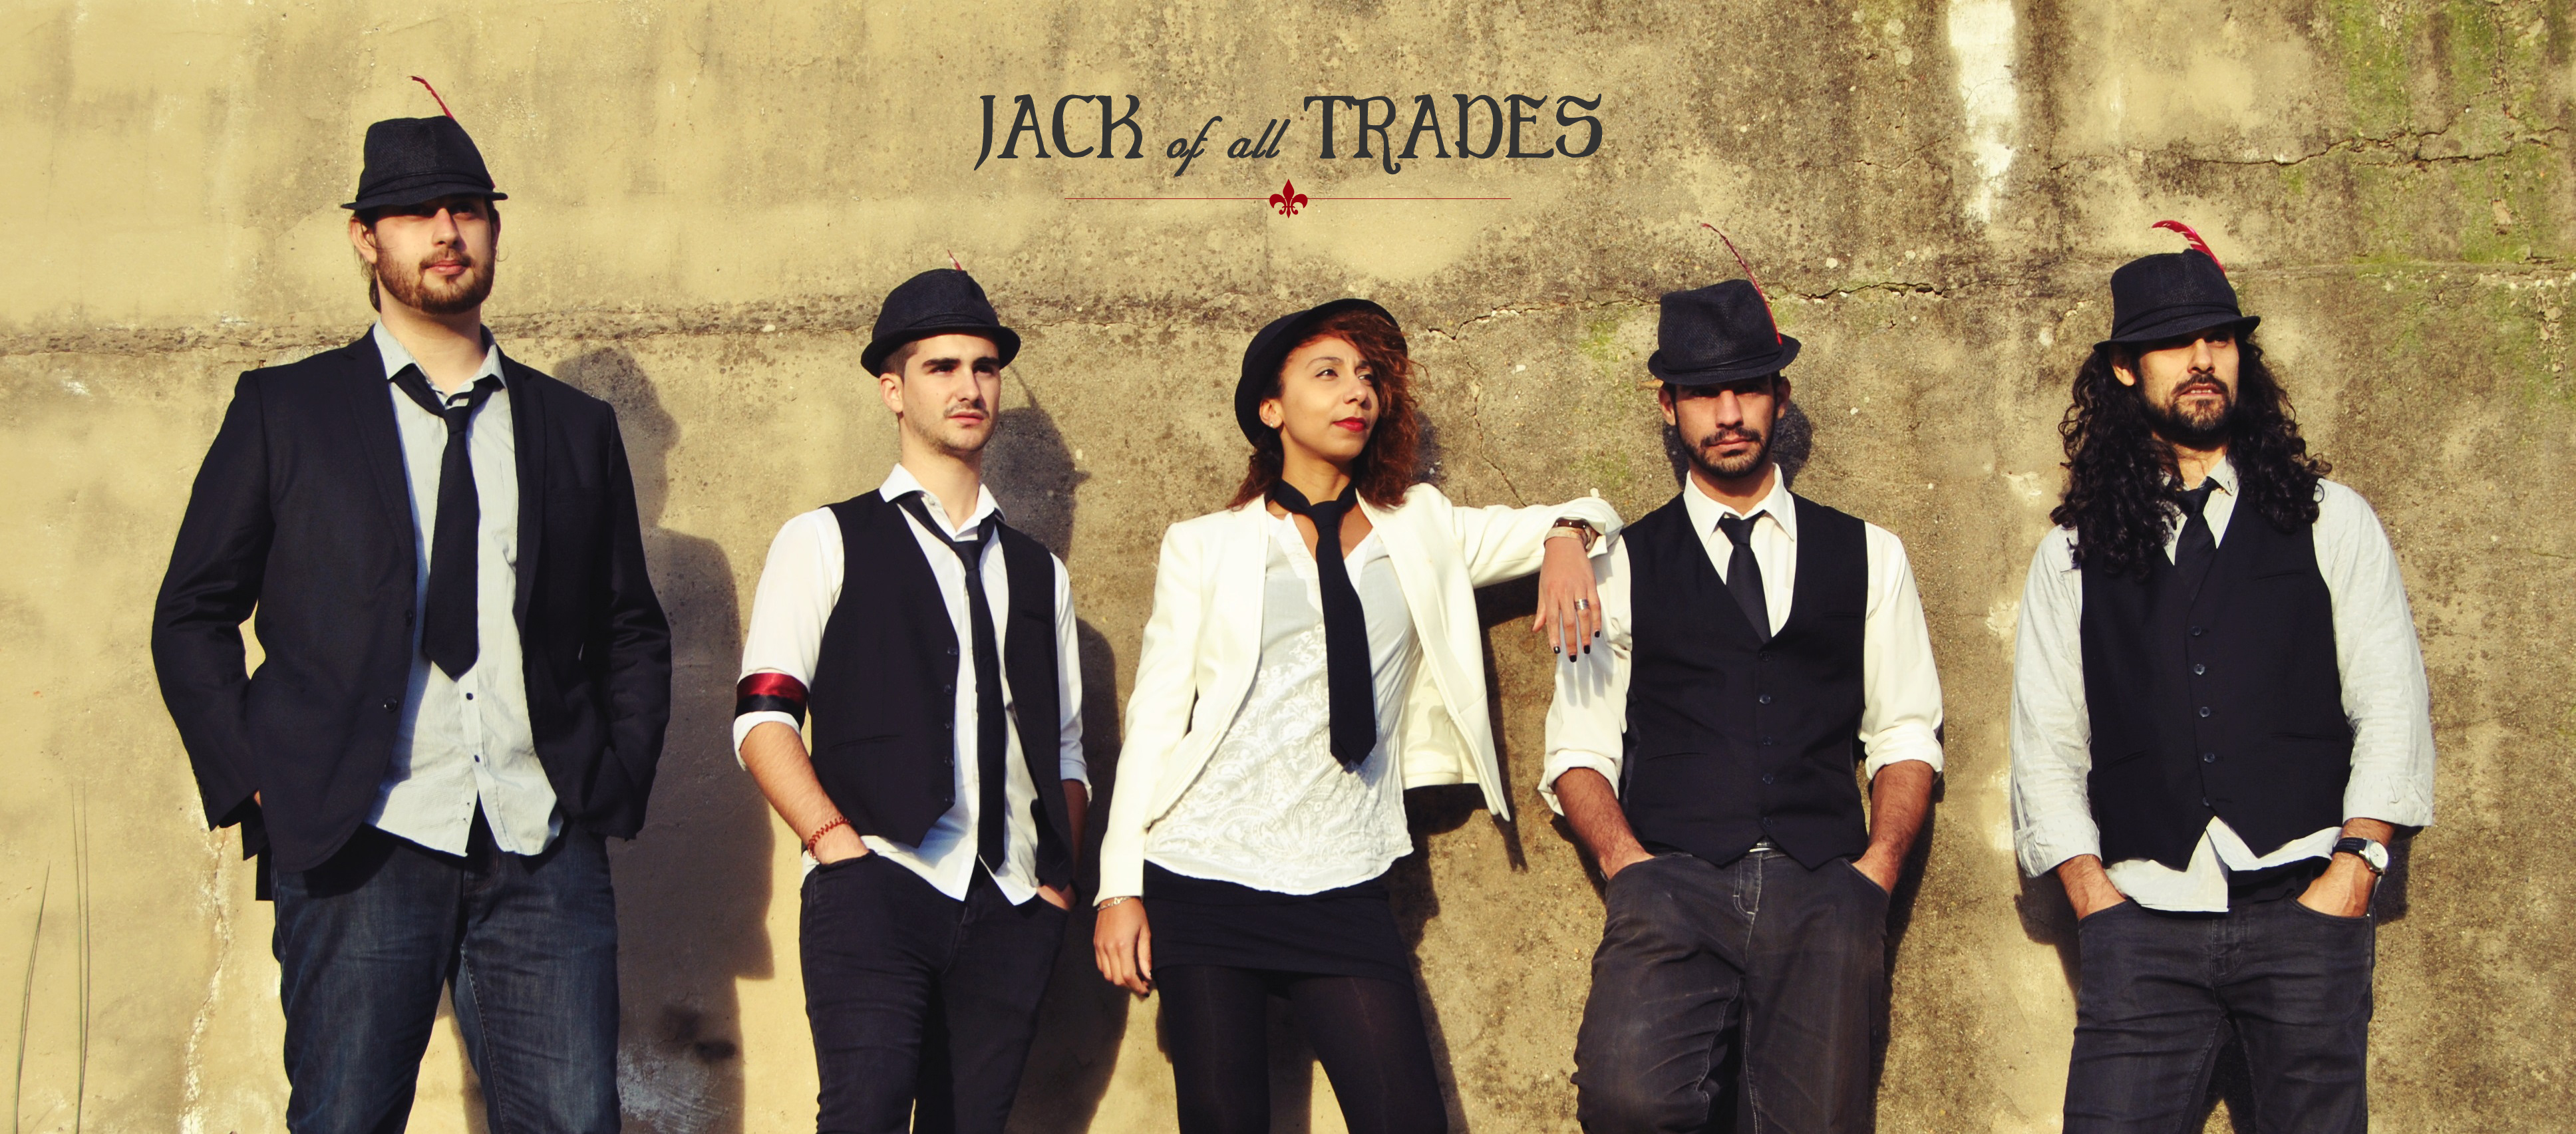 Jack of all Trades (JOAT) Promo Video – Function Band